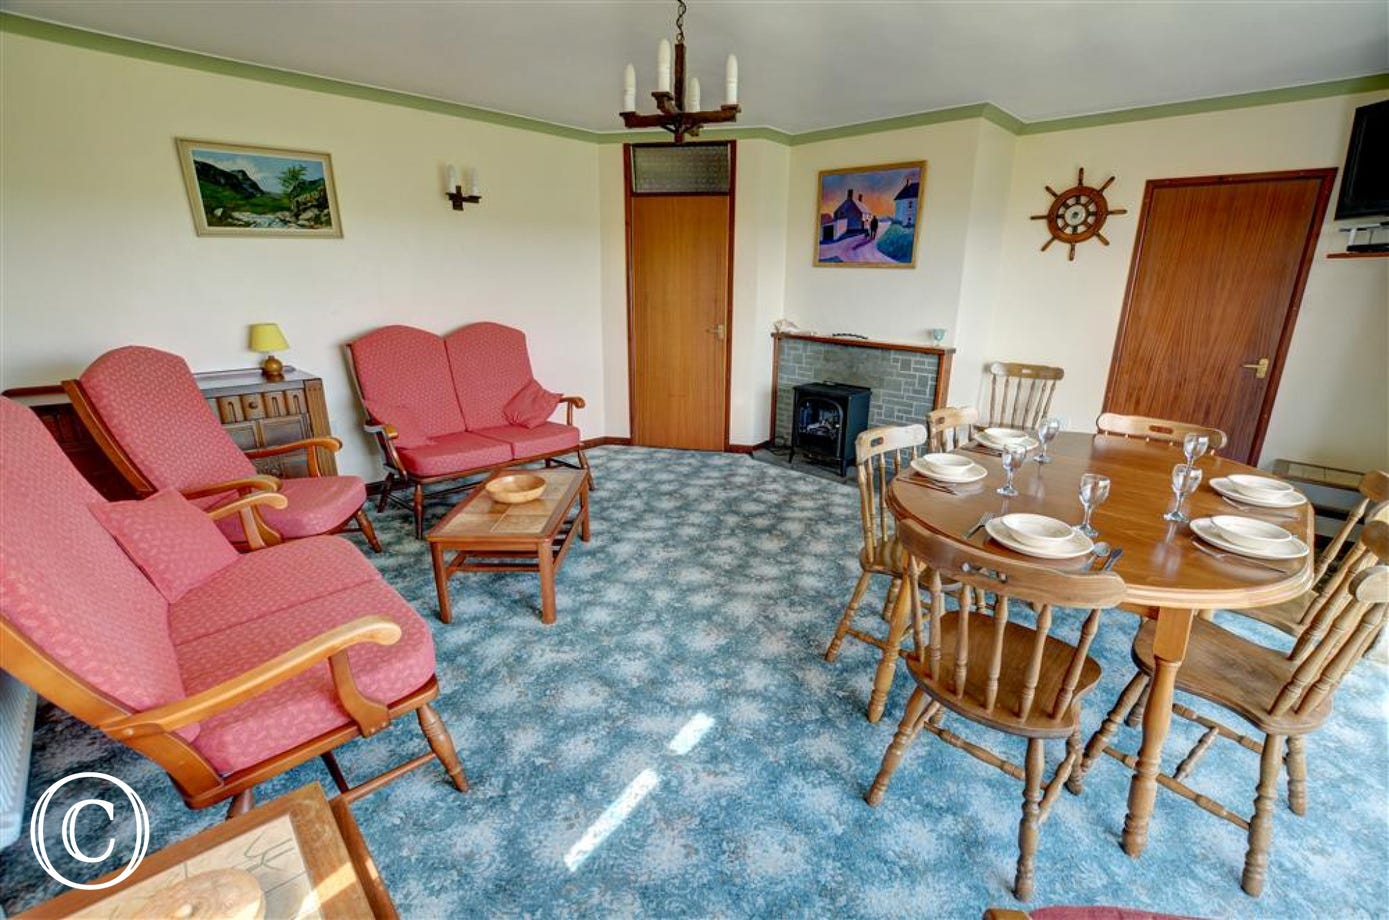 The living room has a cottage suite, dining table and chairs